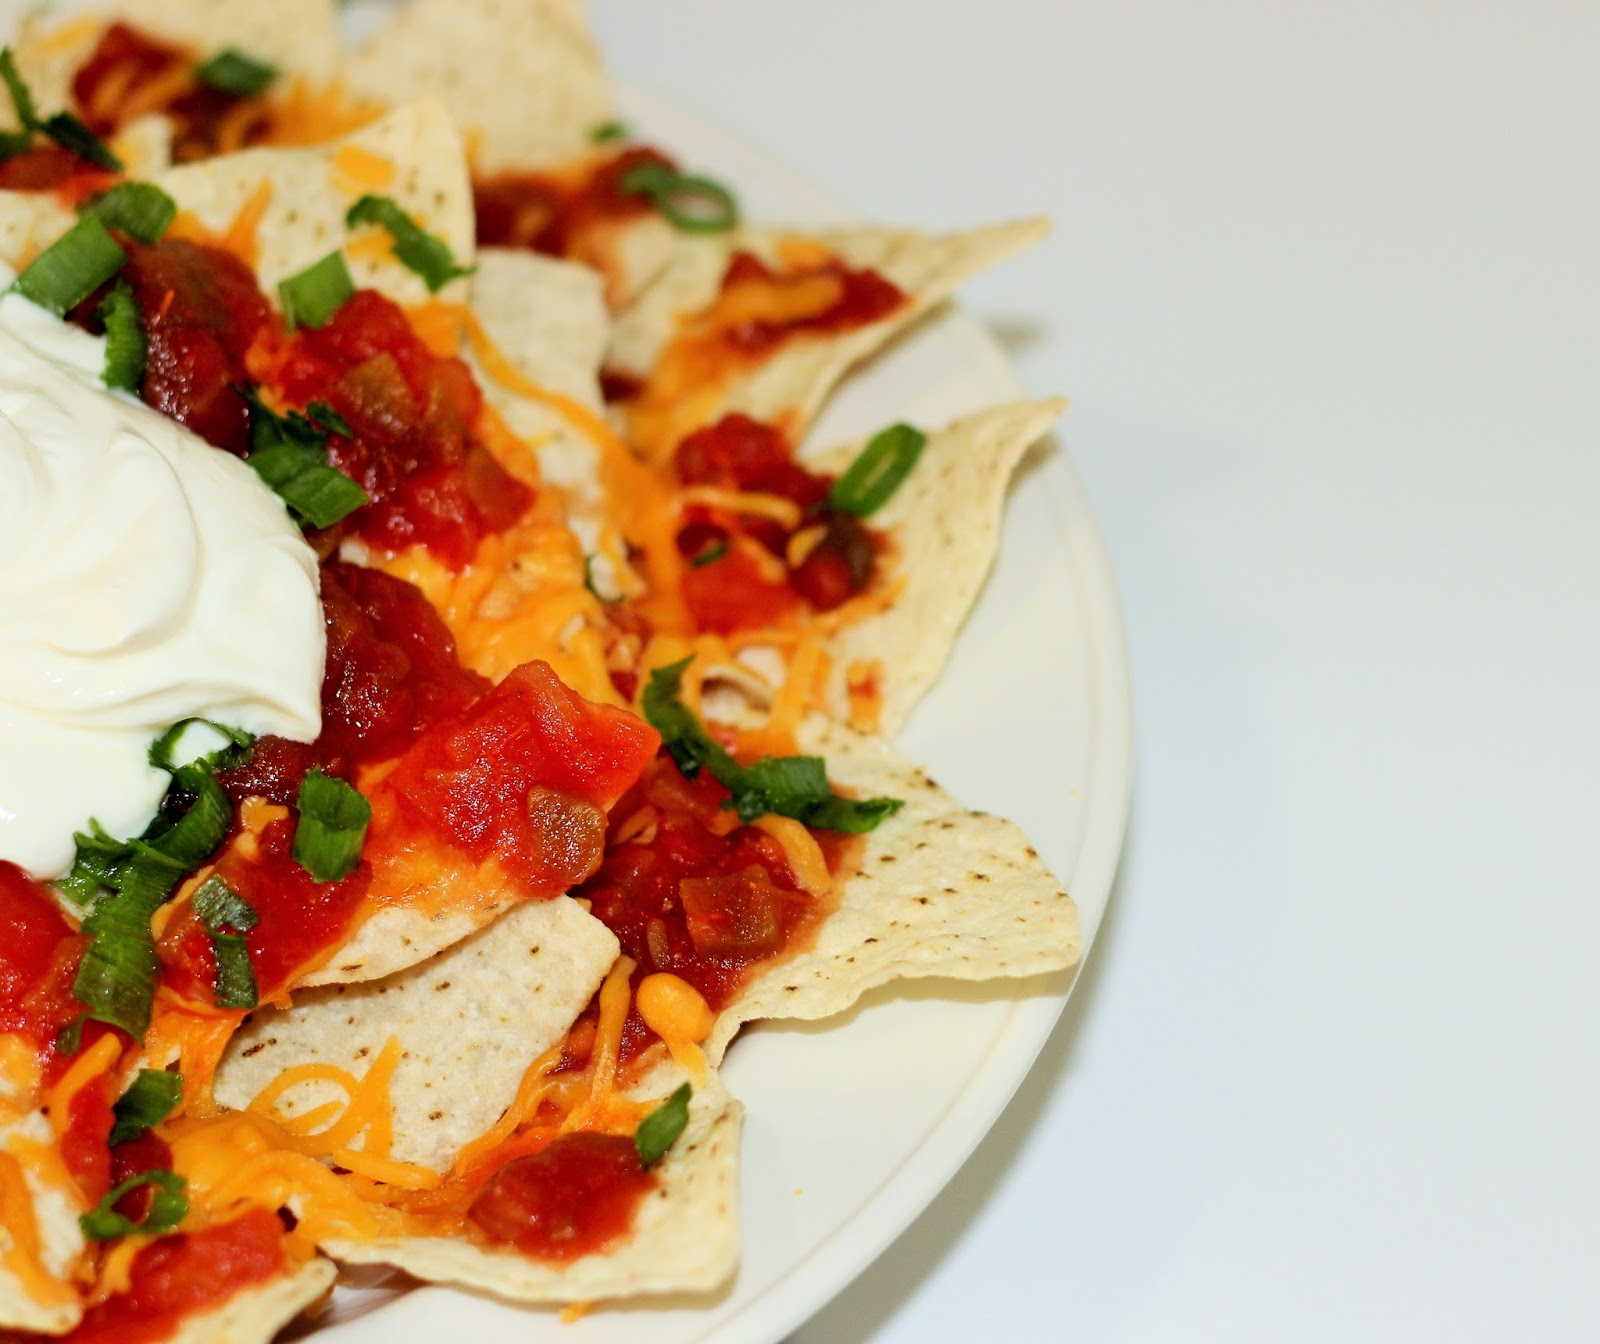 My Delicious Homemade Nachos Recipe With Layer-By-Layer Technique